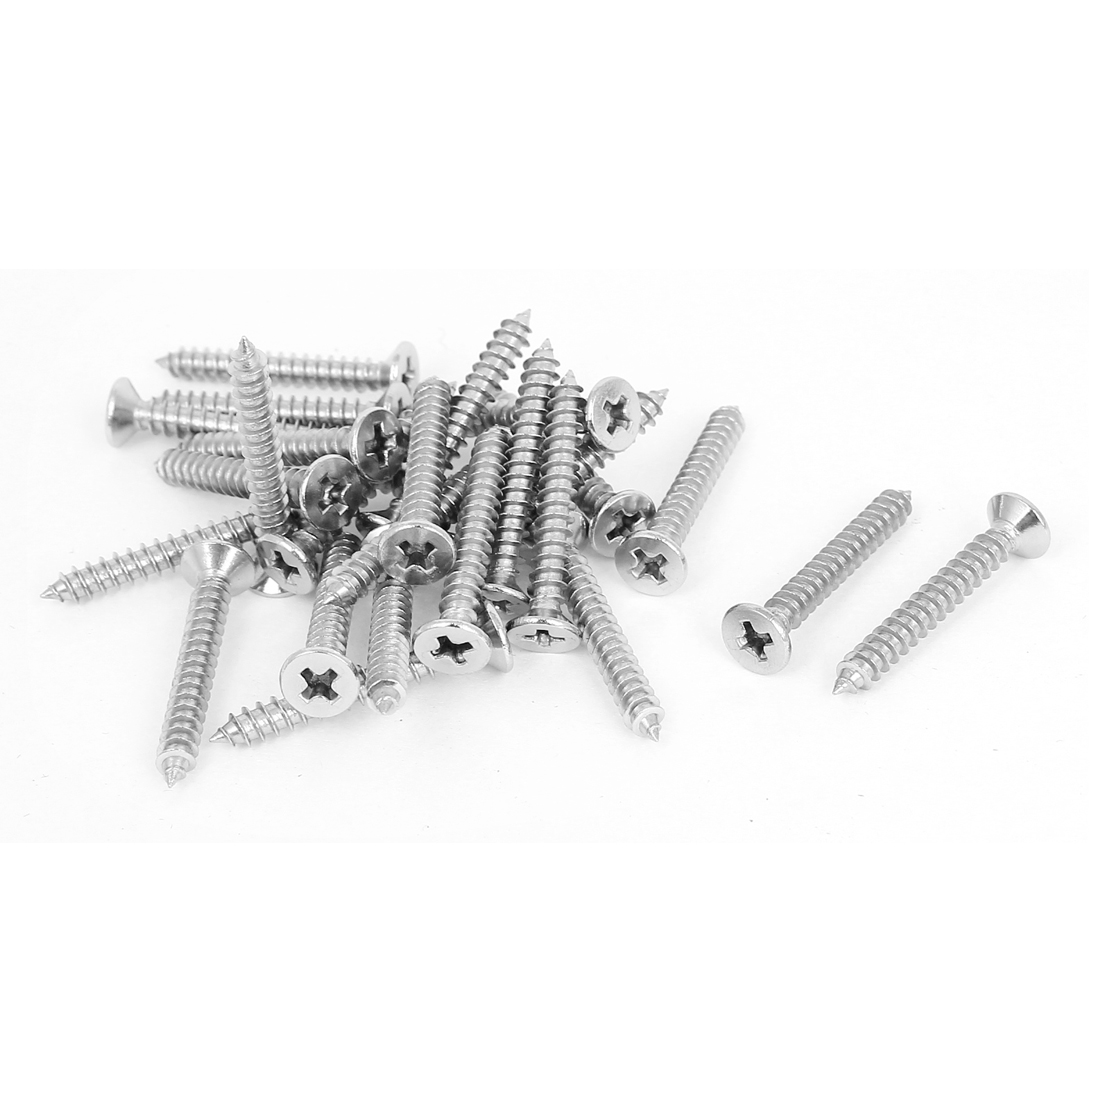 26 Pcs Stainless Steel Phillips Flat Head Sheet Self Tapping Screws 30mm Long